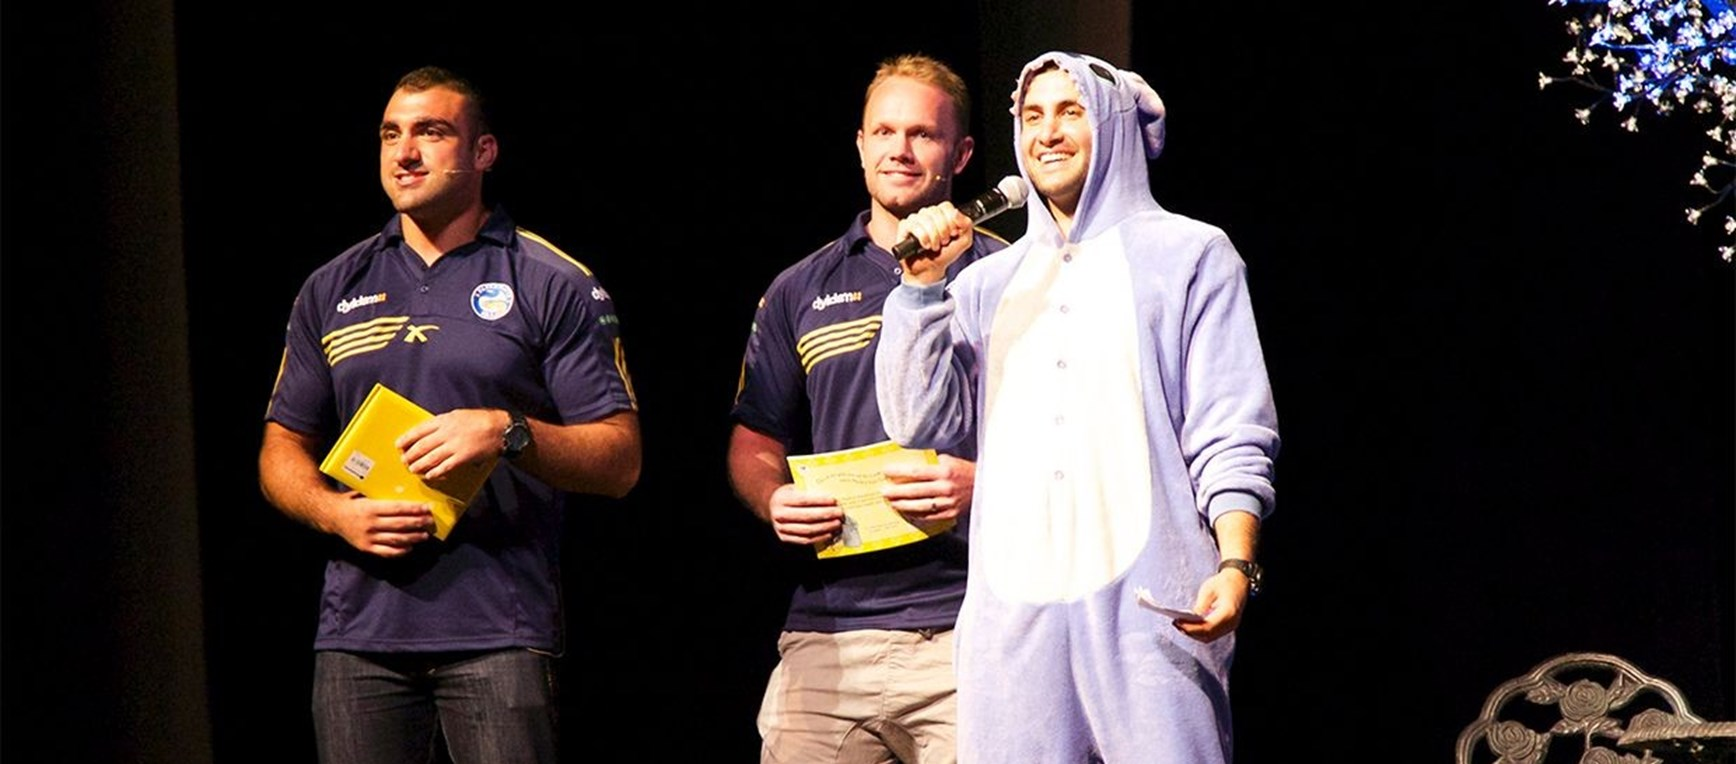 Mannah and Gower visit 'Stories from the Pyjamaverse'